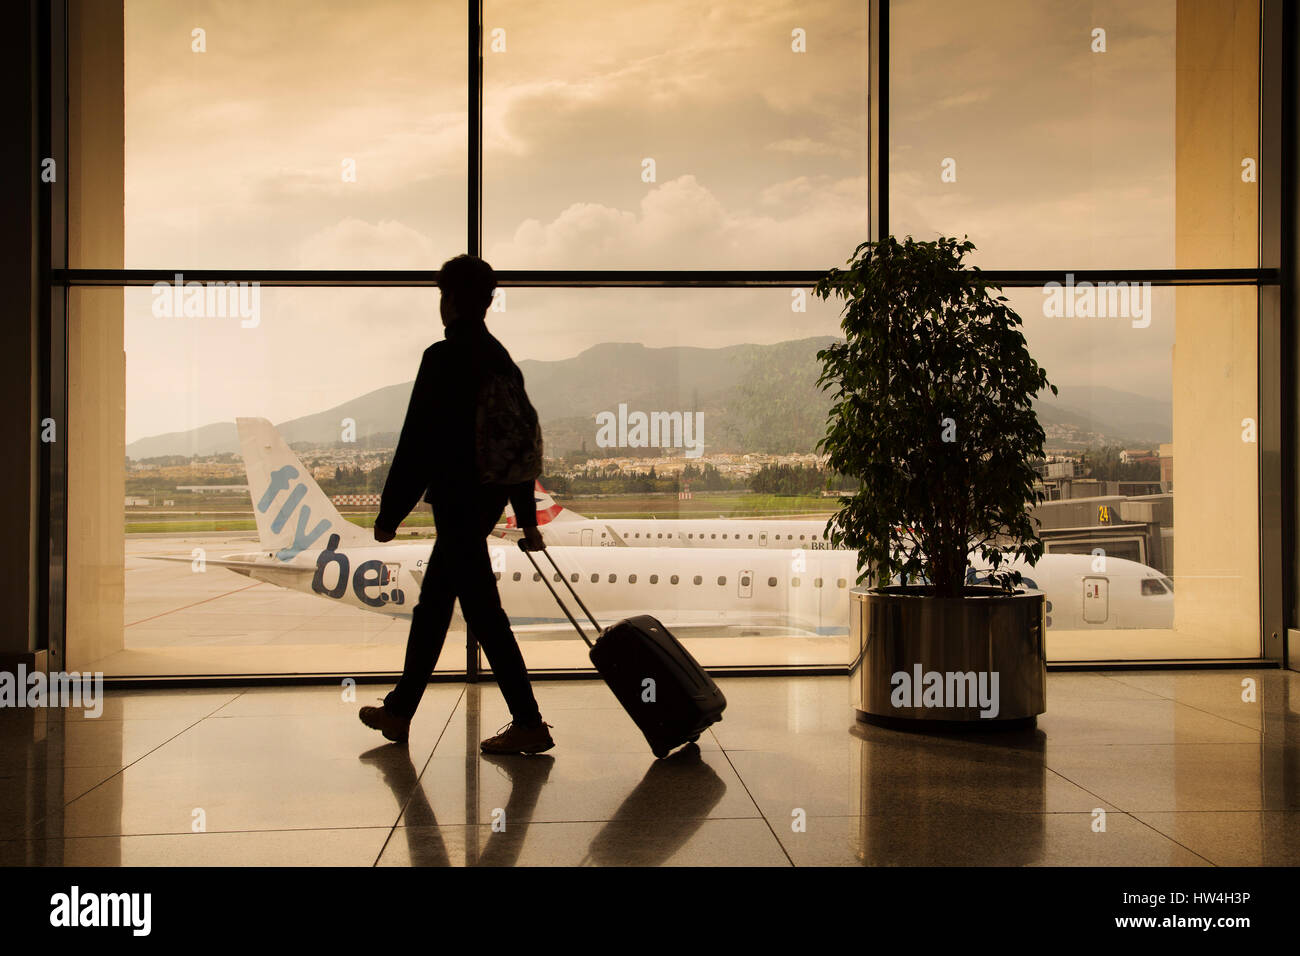 Tourist with luggage at Malaga airport. Costa del Sol, Malaga. Andalusia southern Spain. Europe - Stock Image